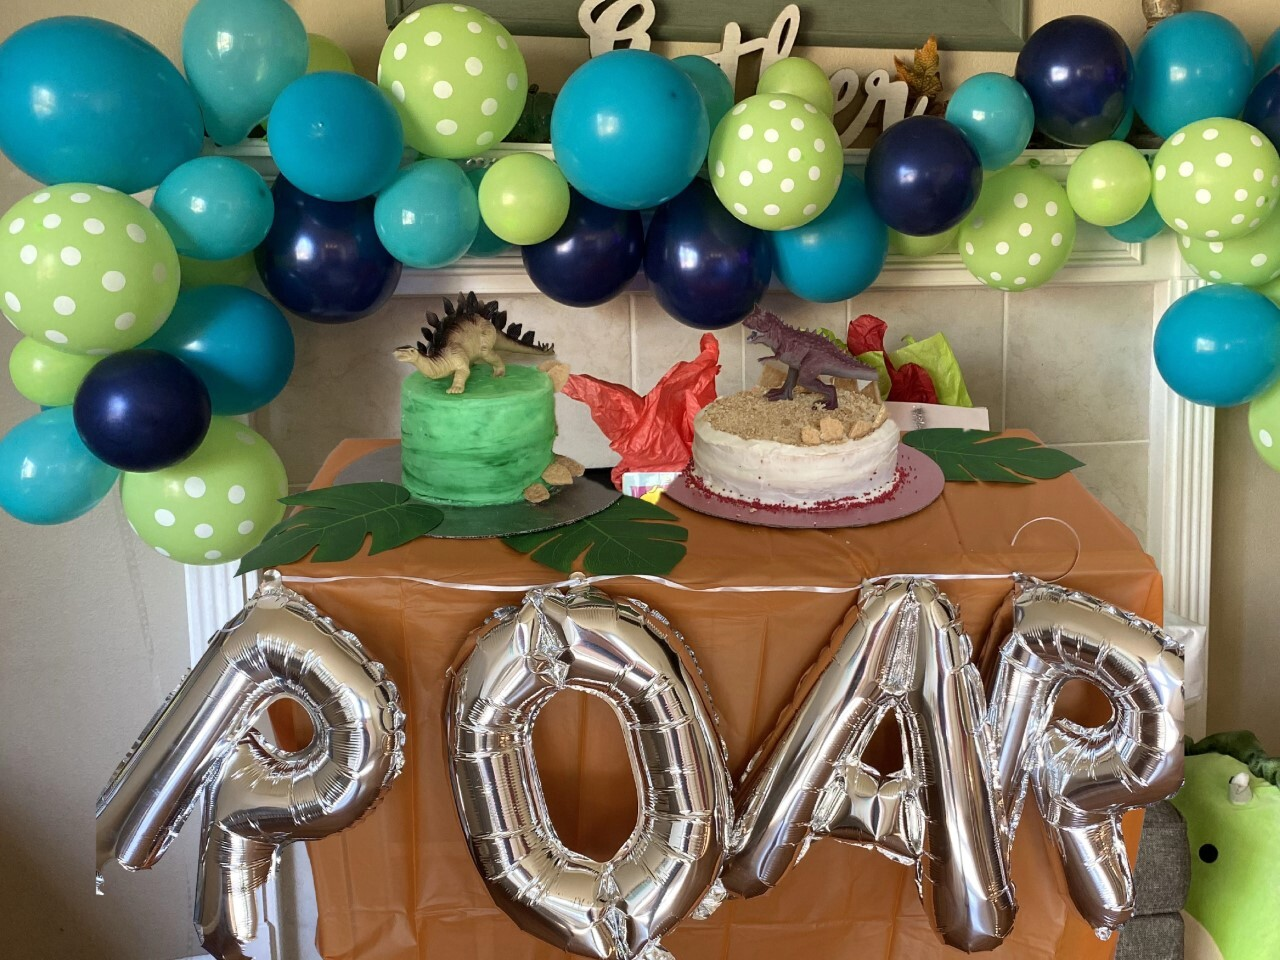 Balloon arch and cakes